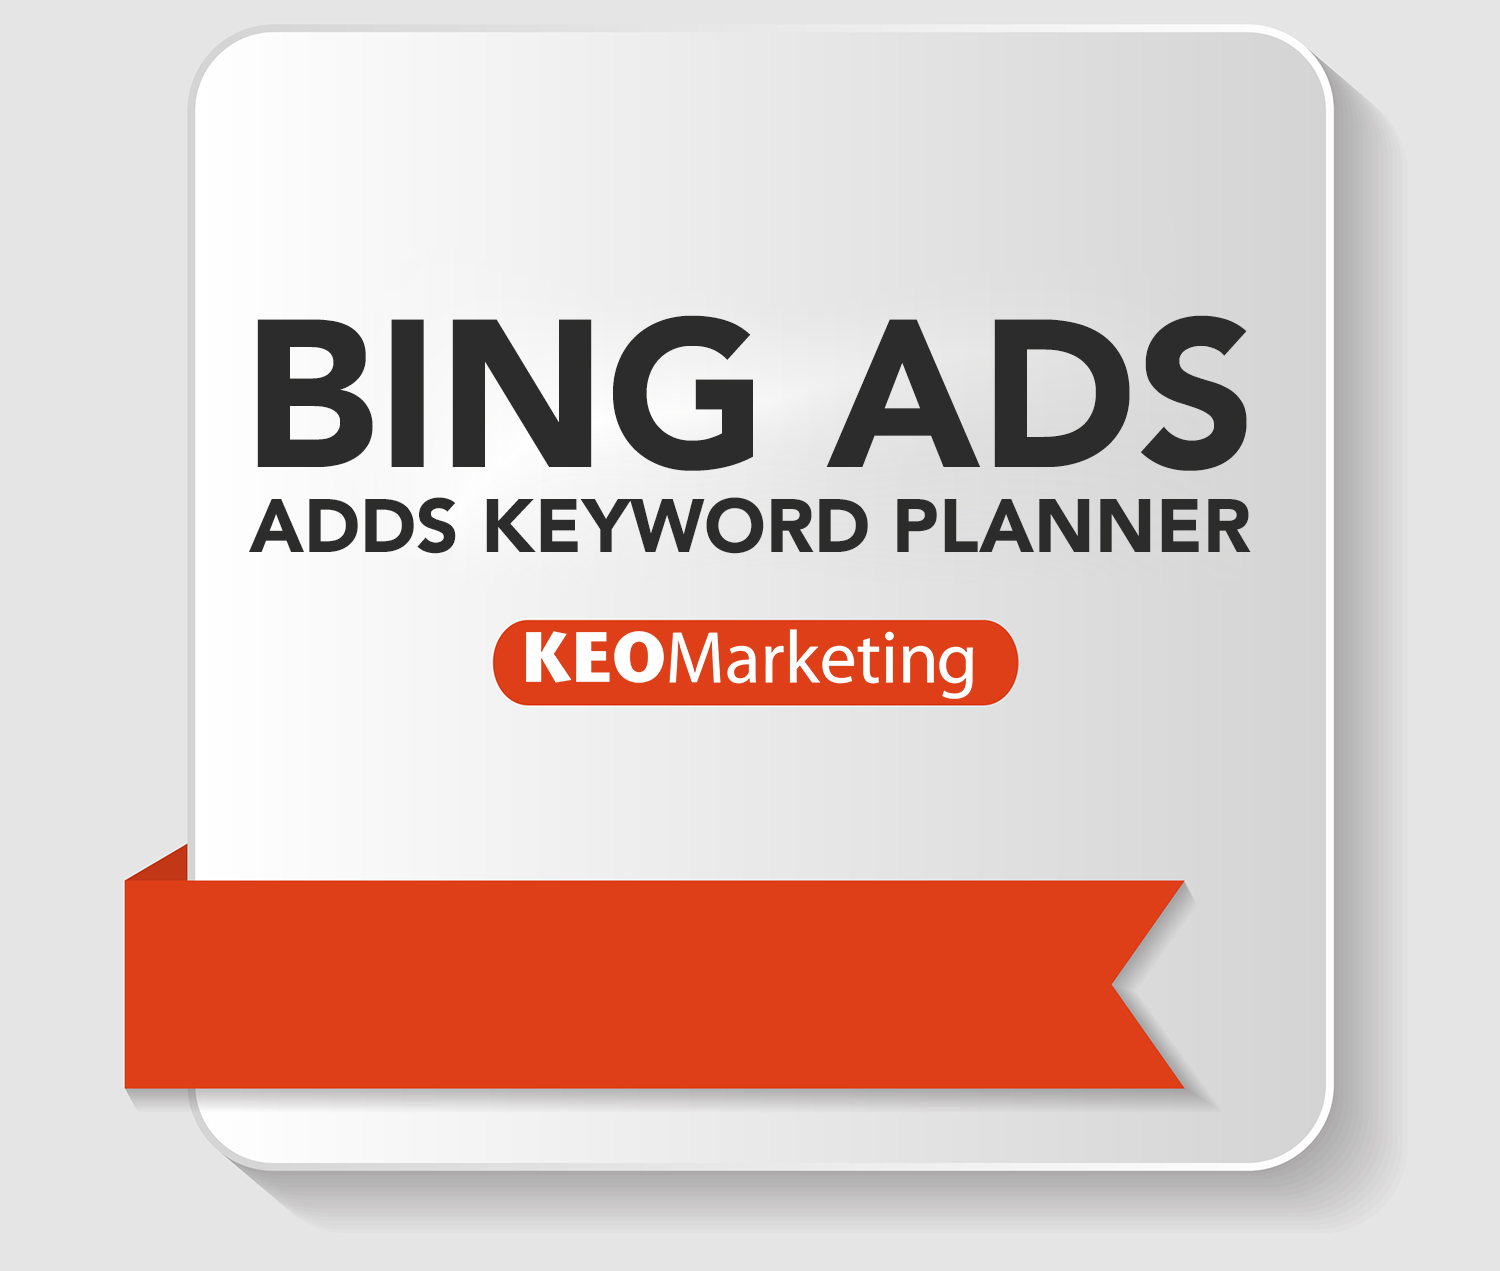 Bing Ads adds a Keyword Planner